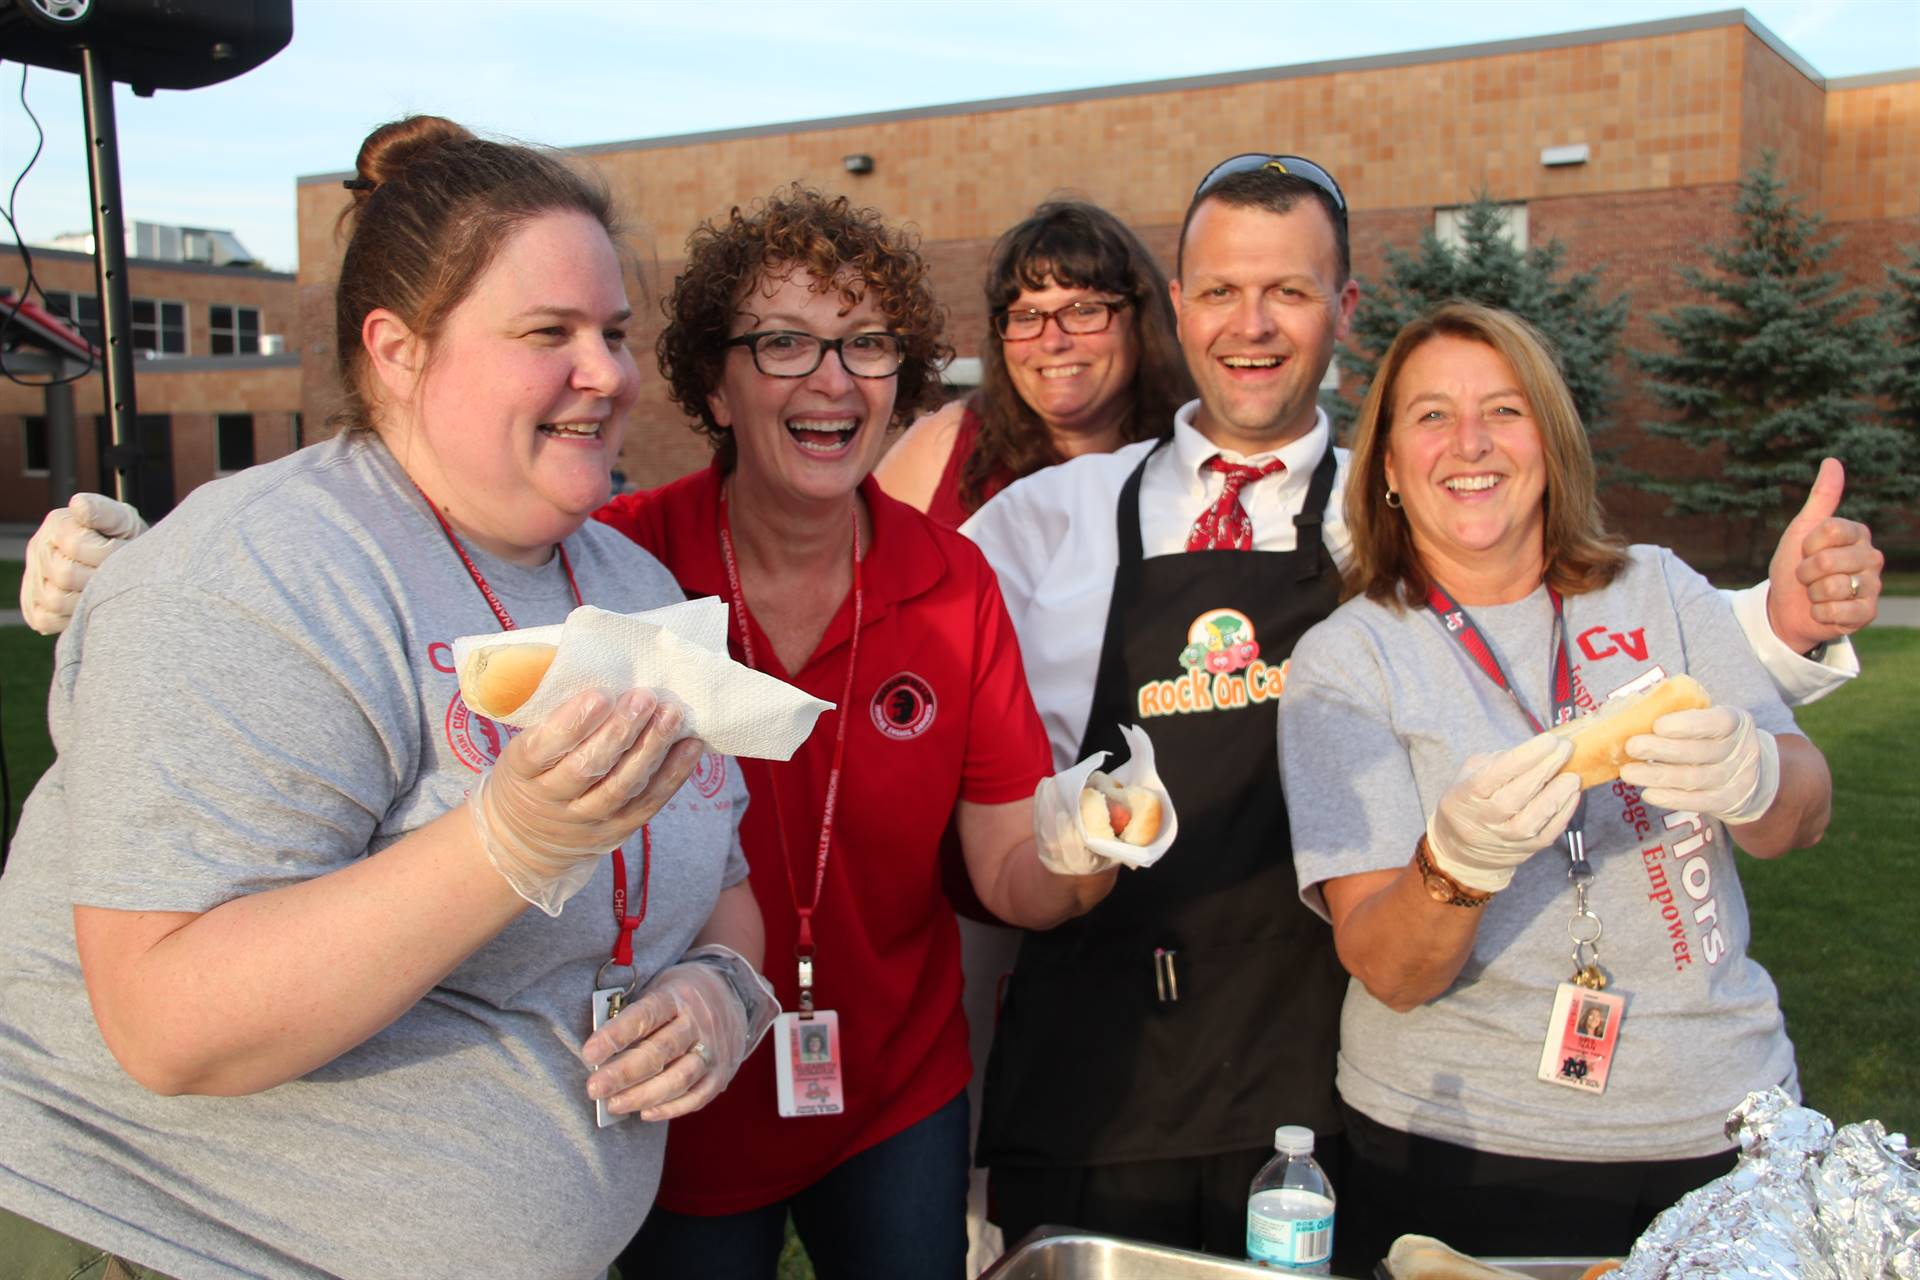 c v staff members who are helping to serve hot dogs smile for a picture